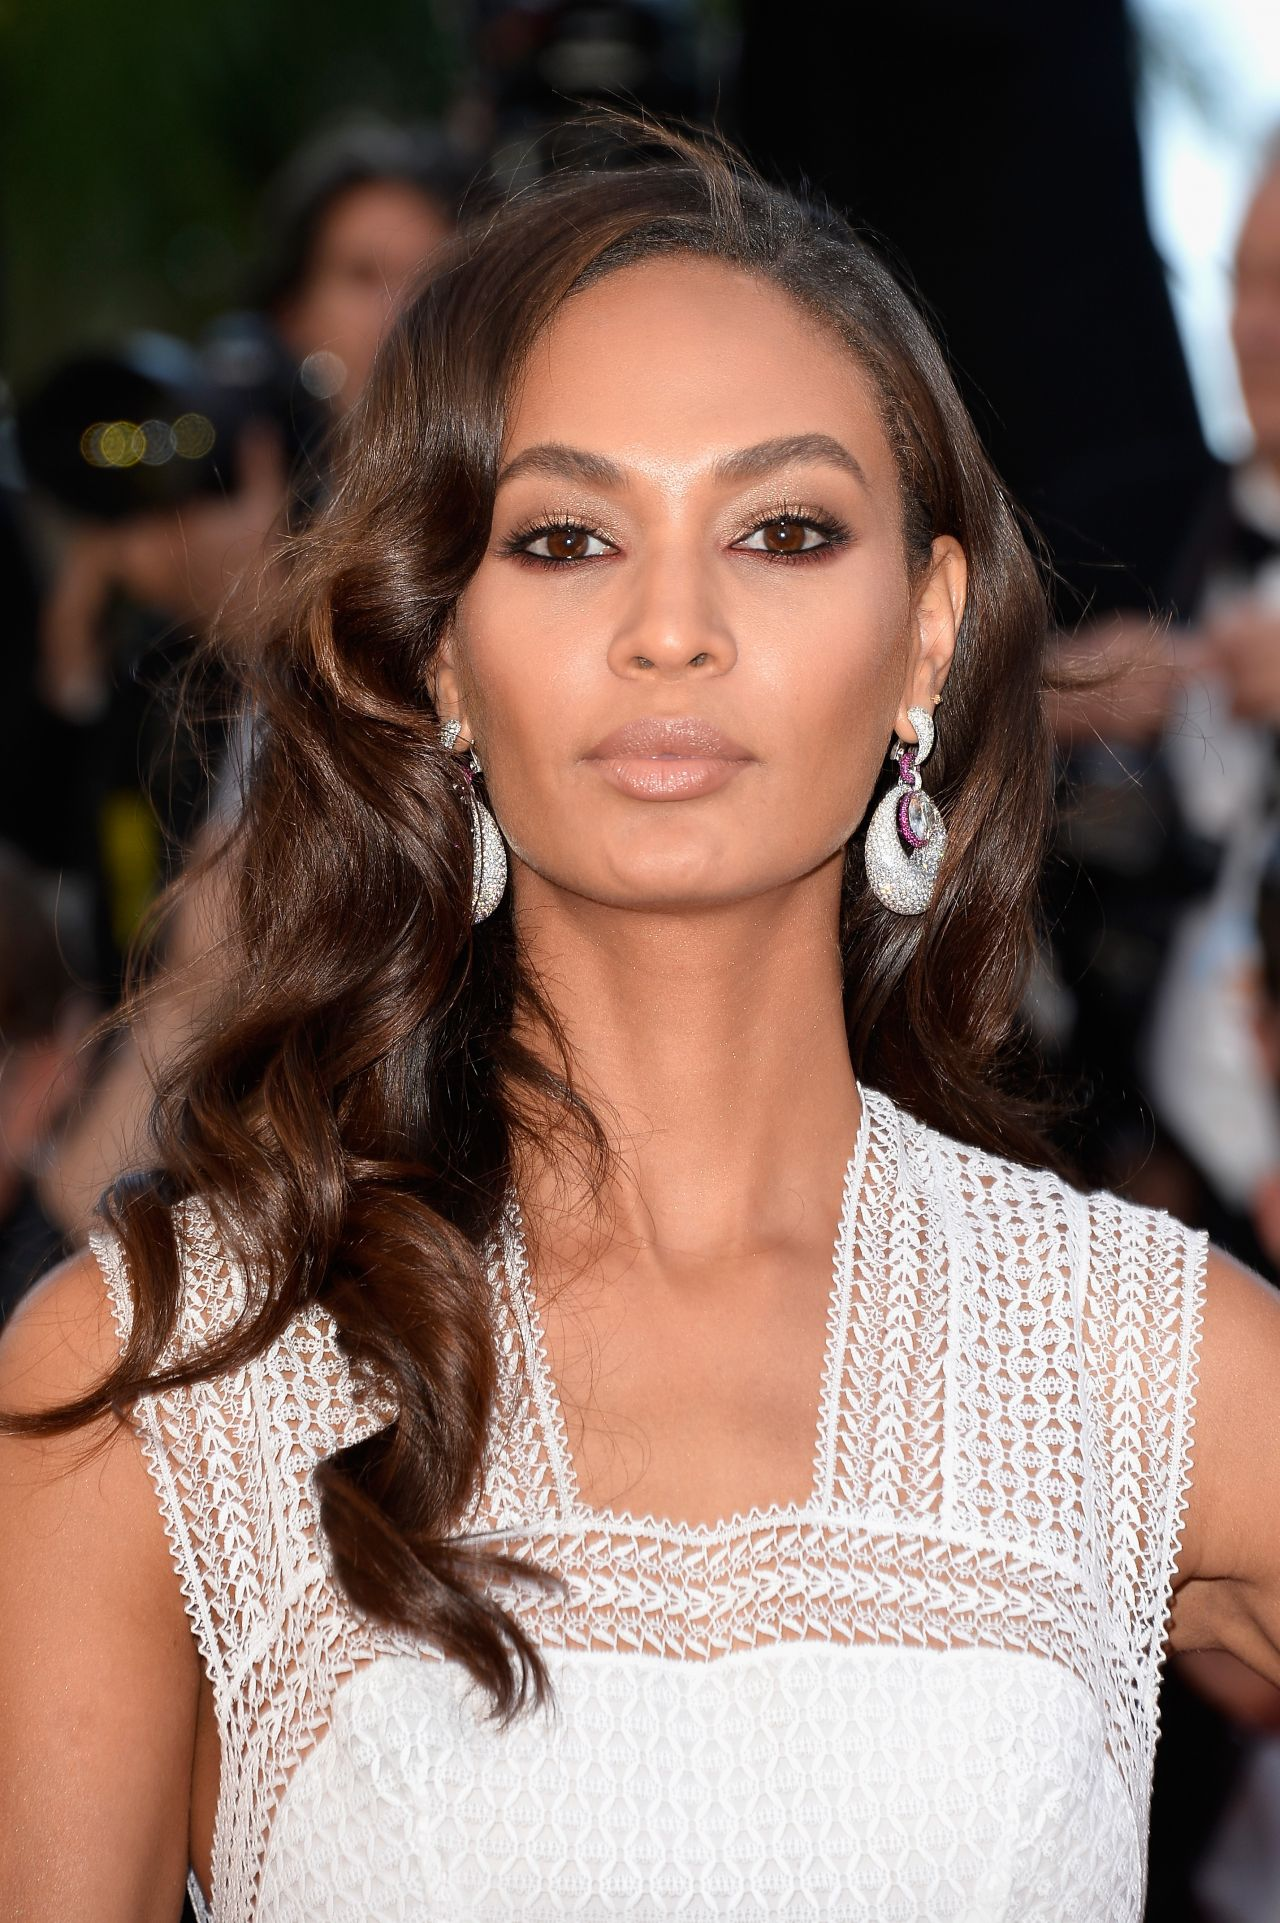 Joan Smalls At Topshop Fashion Show At London Fashion Week: Youth Premiere At 2015 Cannes Film Festivala